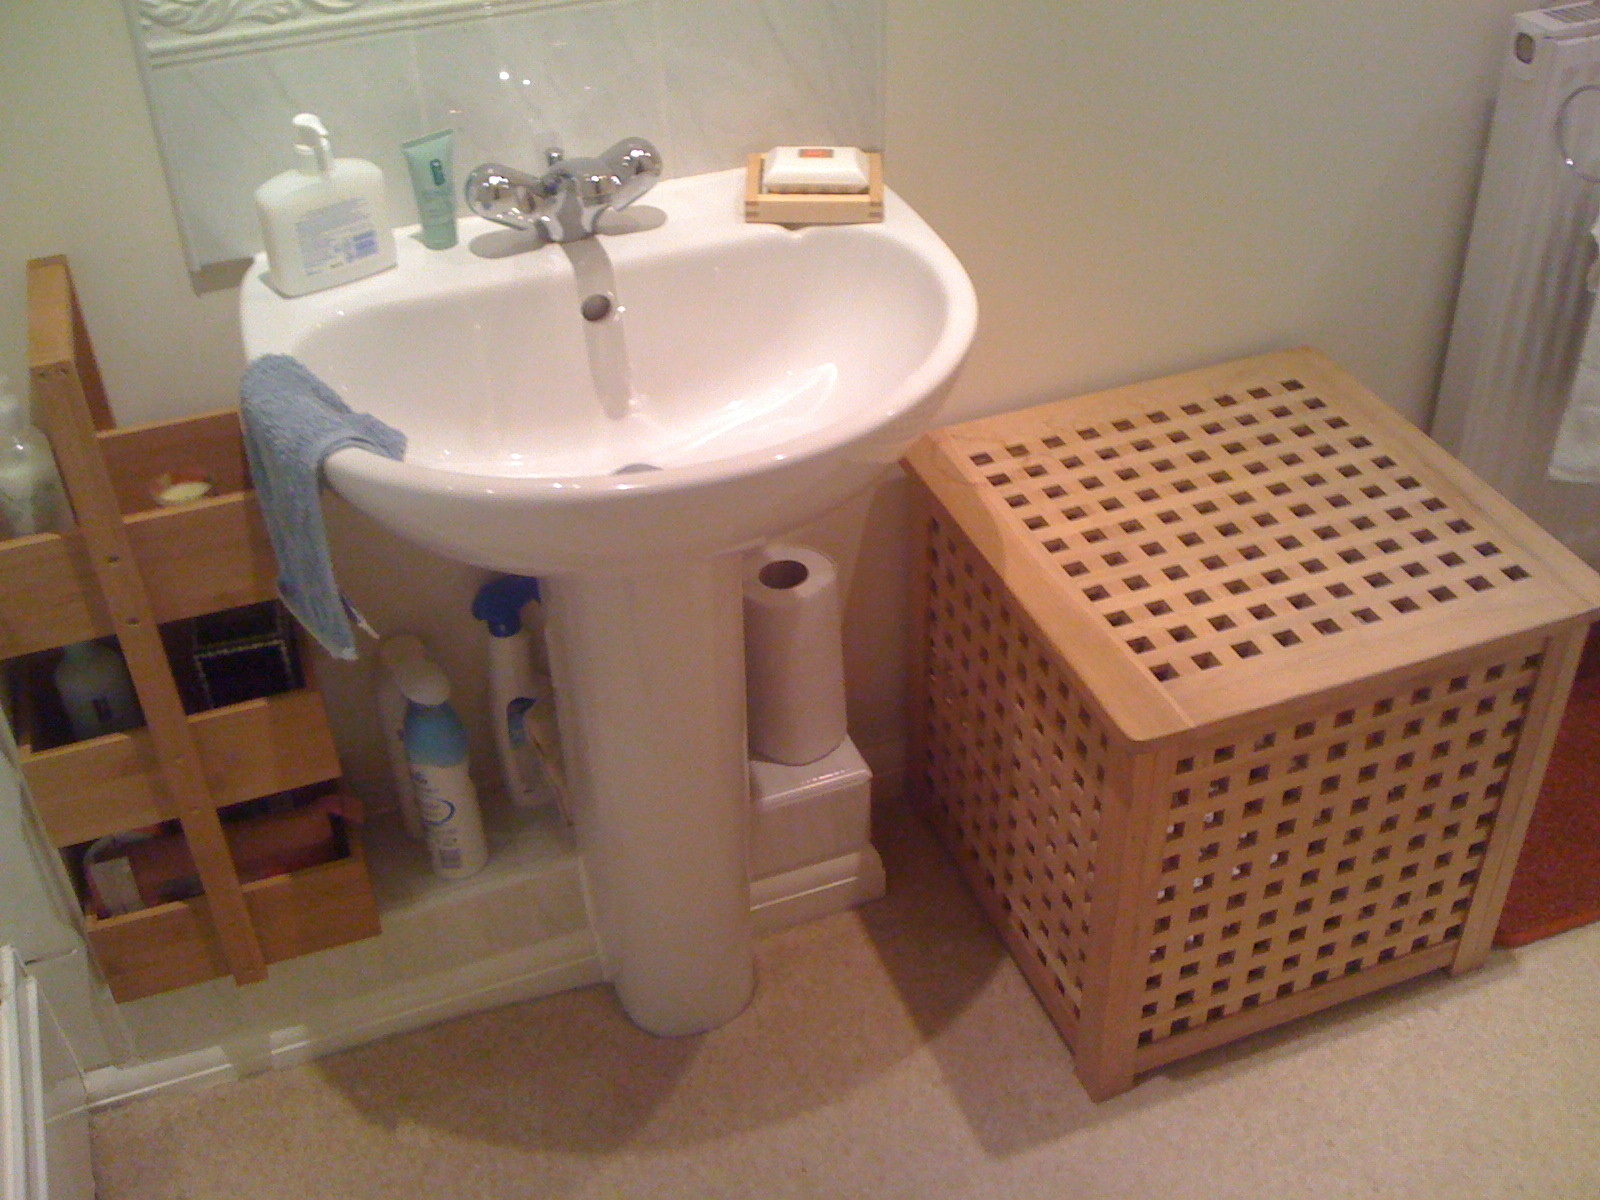 a small IKEA Hol table used in the bathroom to store things inside and outside too